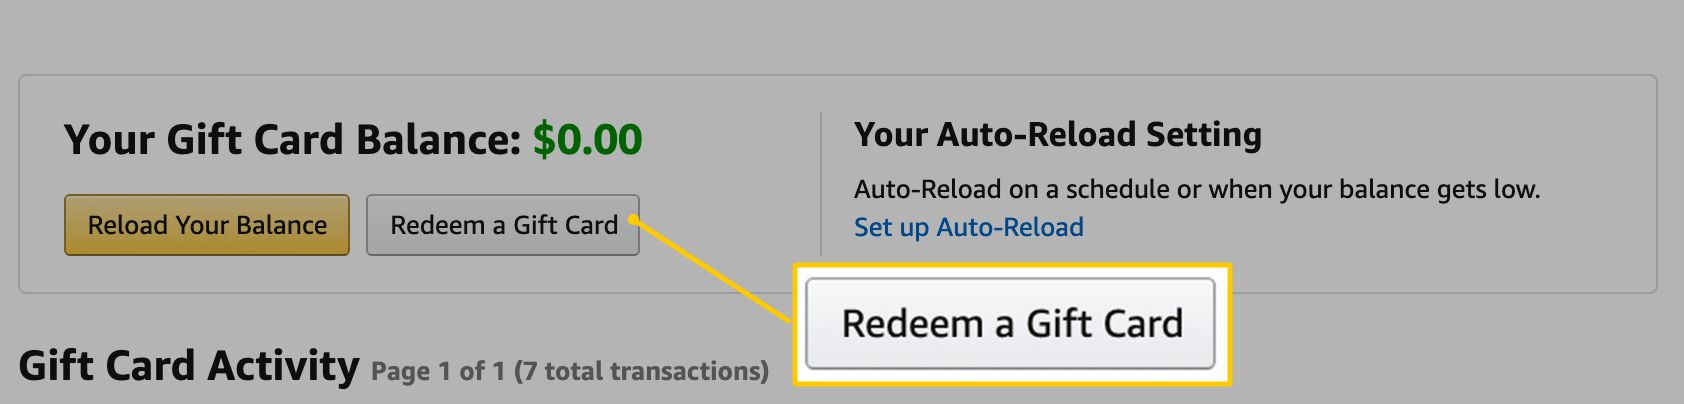 Redeem a Gift Card button on Amazon